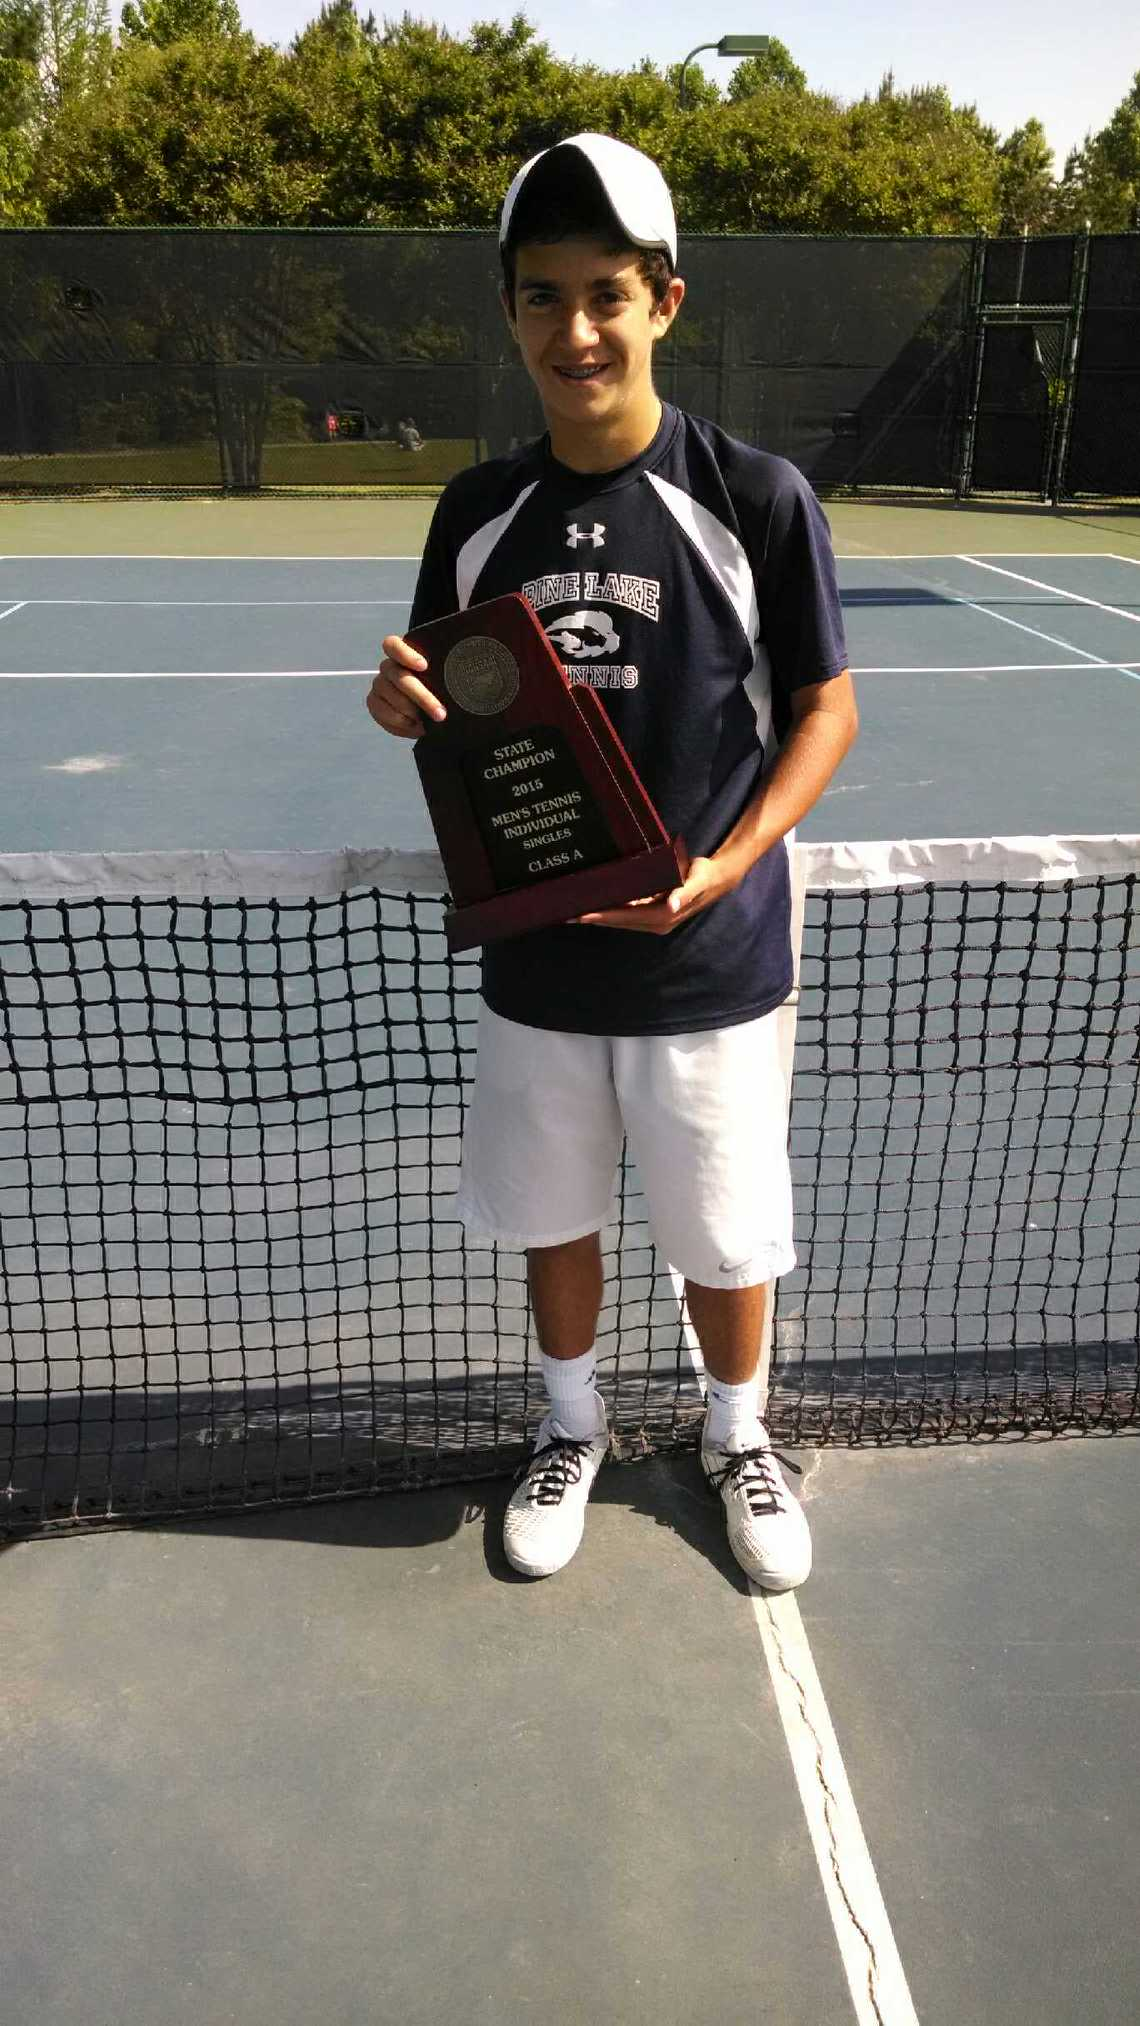 Pine Lake Preps Vicario Wins NCHSAA A Mens Singles Middle - Pine lake prep us map